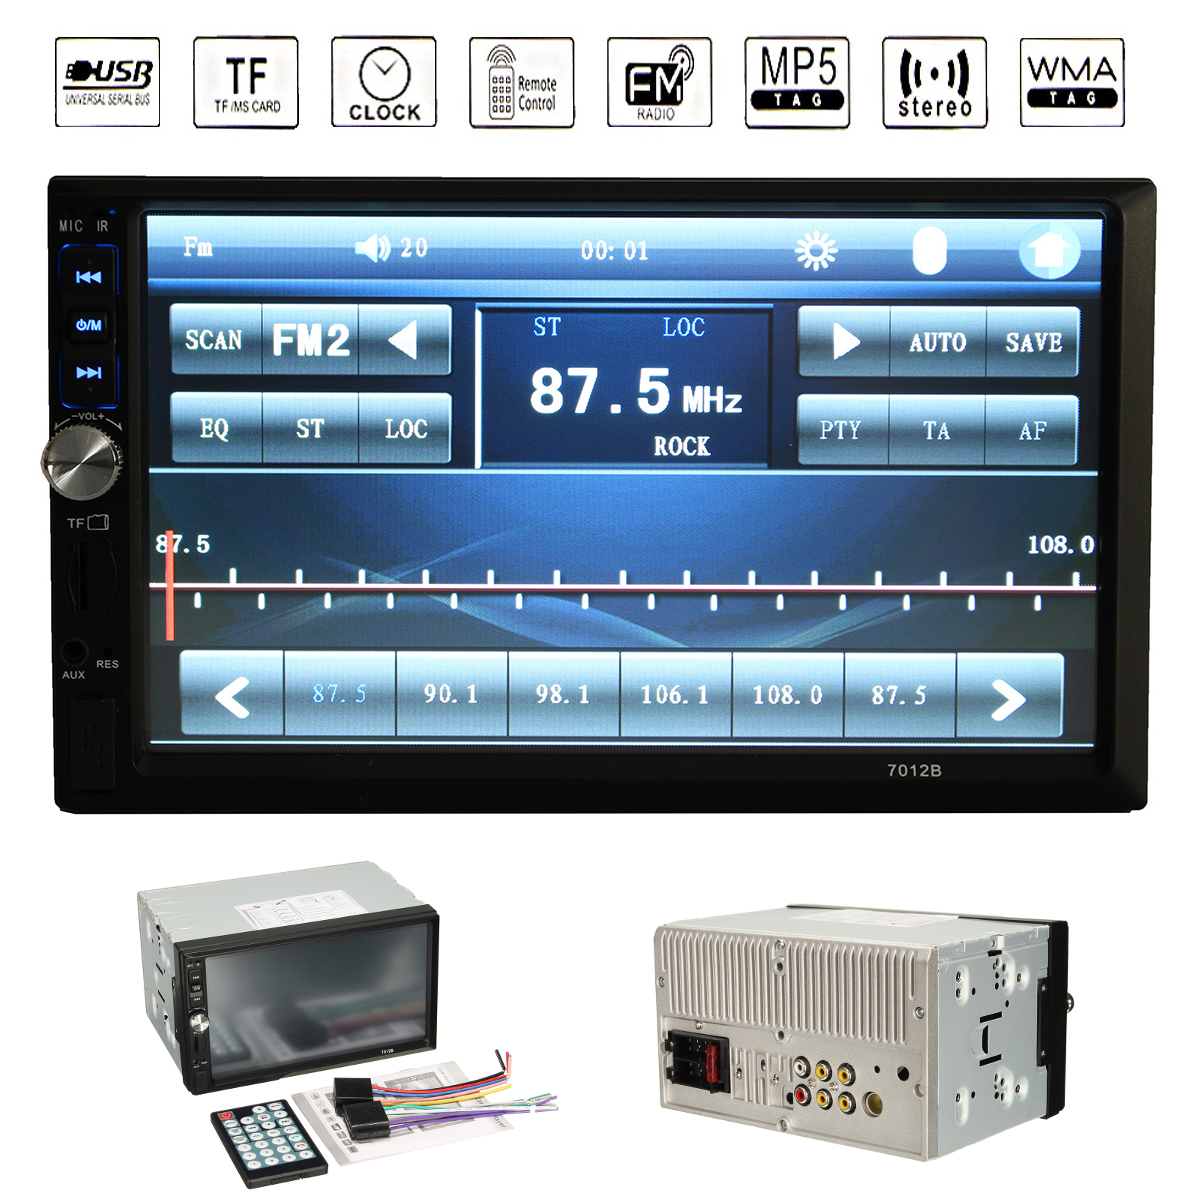 7012B 7inch 2DIN Car bluetooth Touchscreen MP3 MP4 MP5 Player Video Stereo FM Aux Input